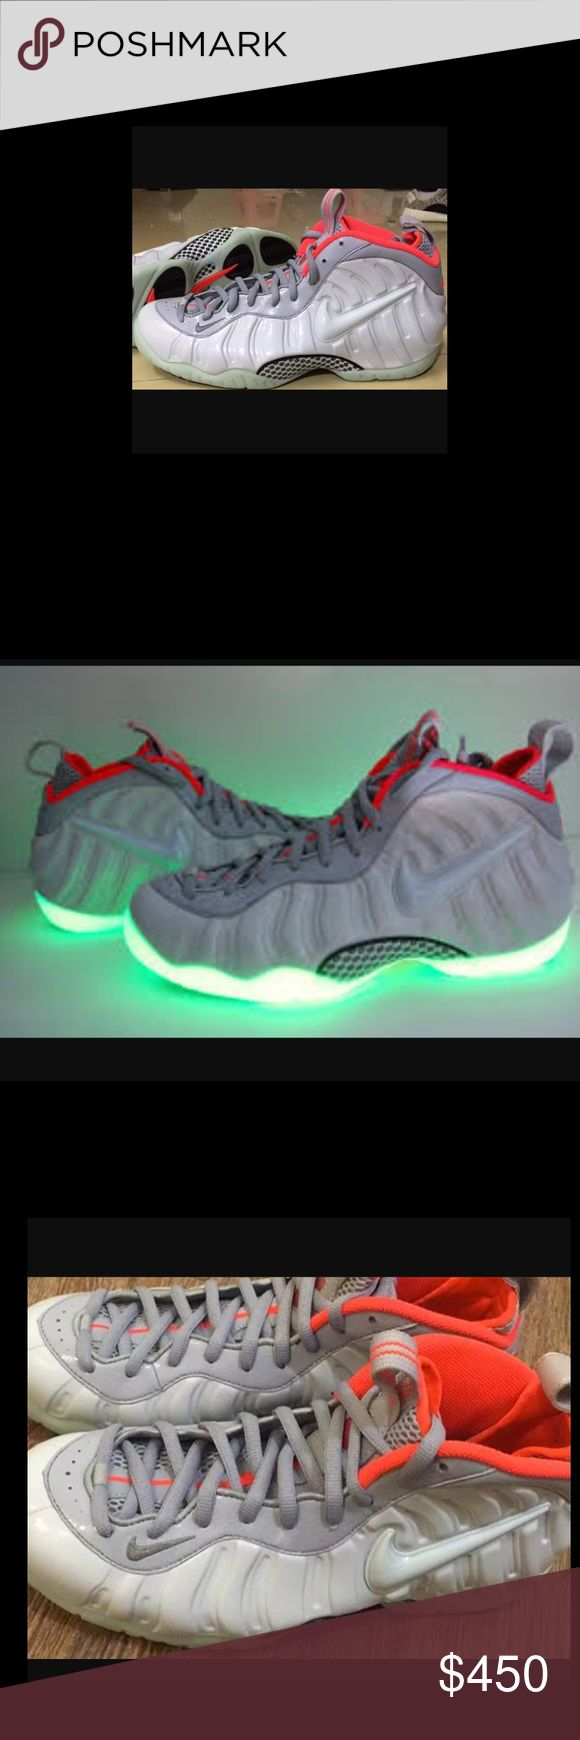 Jordan eclipse and yeezy foamposite Brand barely worn and they glow in the dark Nike Shoes Athletic Shoes